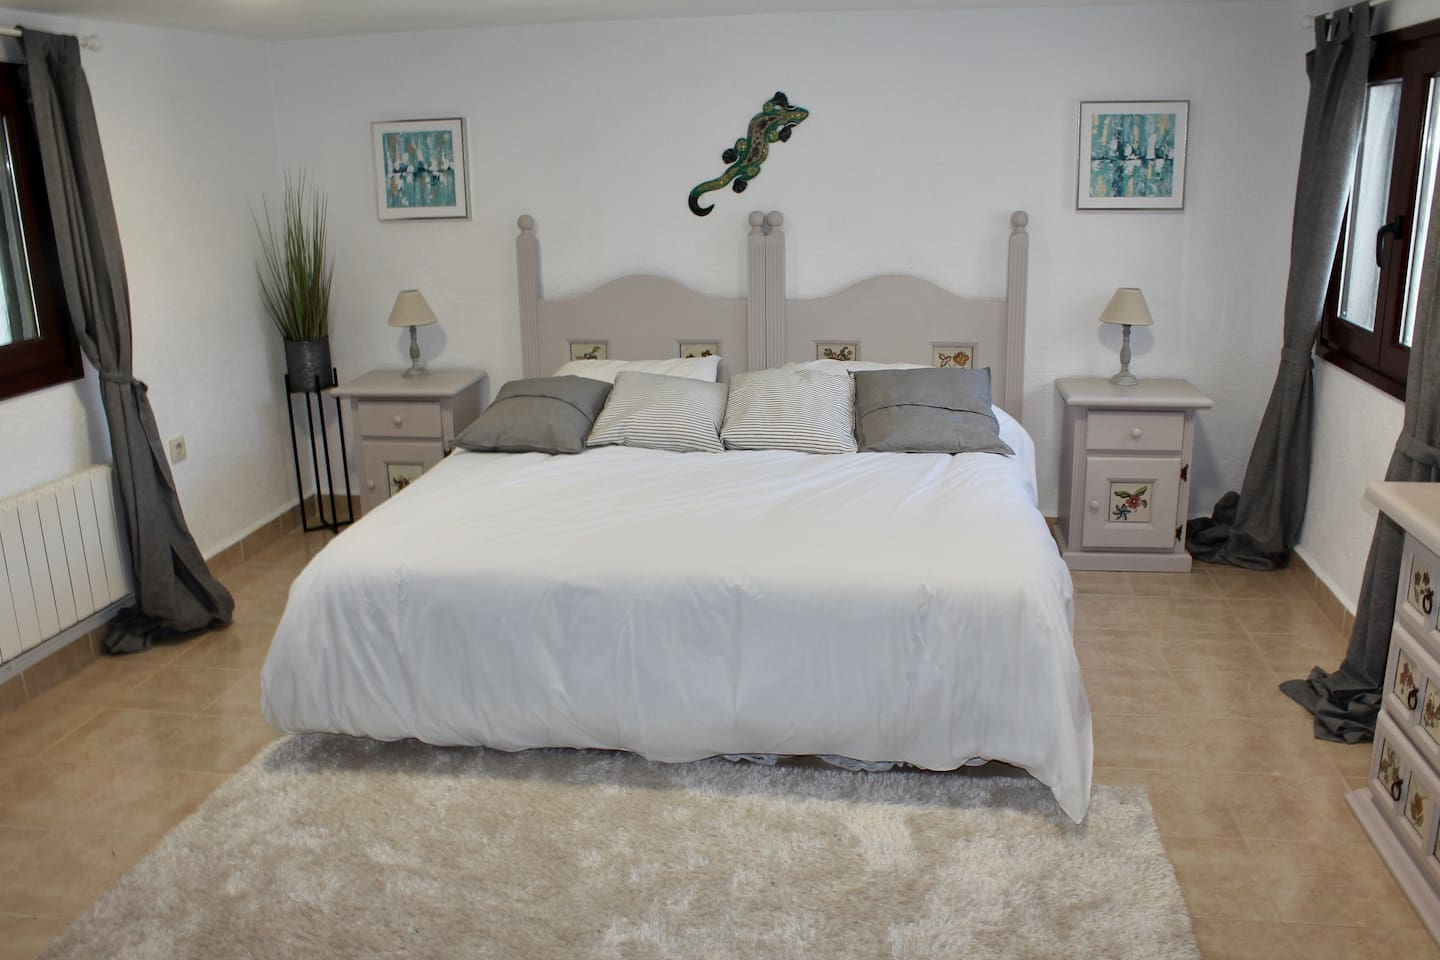 The Super King Bedroom is very spacious with a dressing table, wardrobe and chair.